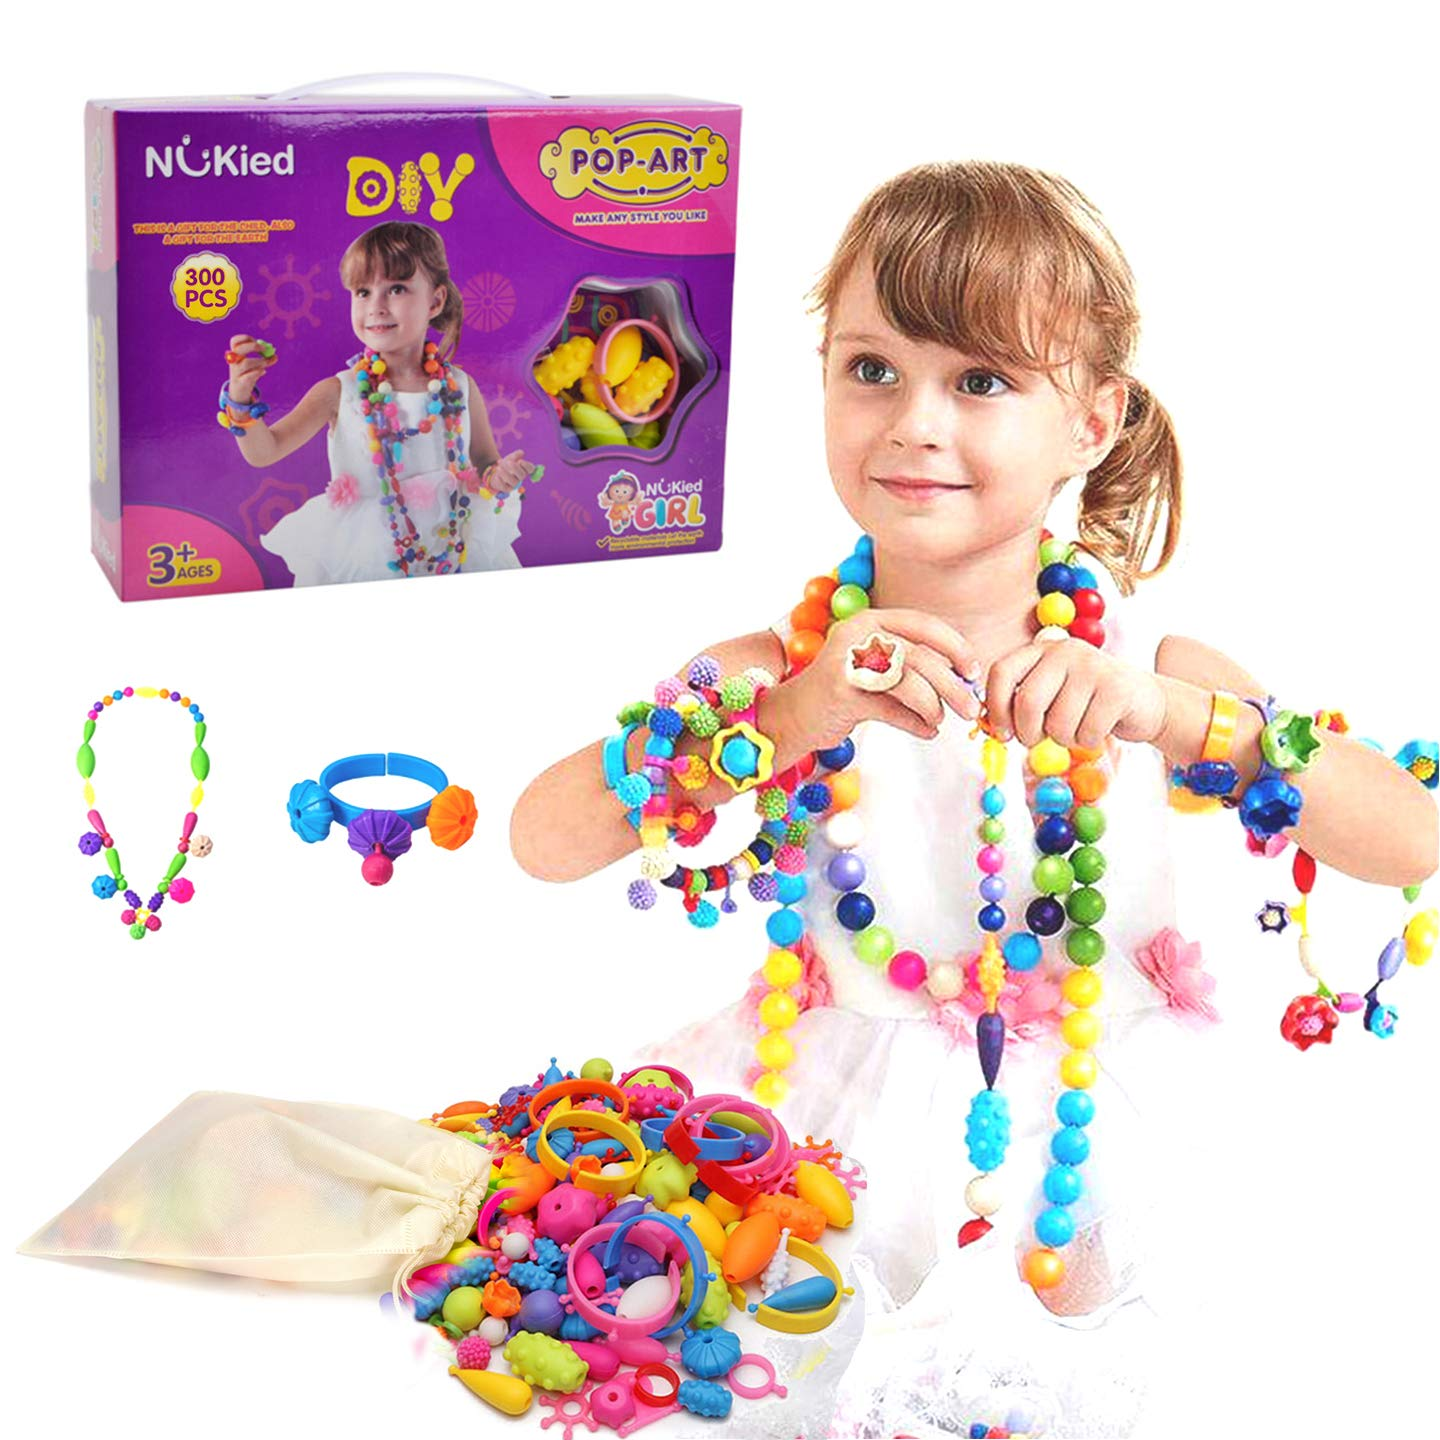 Snap Pop Beads Girls Toy Happytime 300 Pieces DIY Jewelry Kit Fashion Fun for Necklace Ring Bracelet Art Crafts Toys for 3 4 5 6 7 8 Year Old Kids Girls